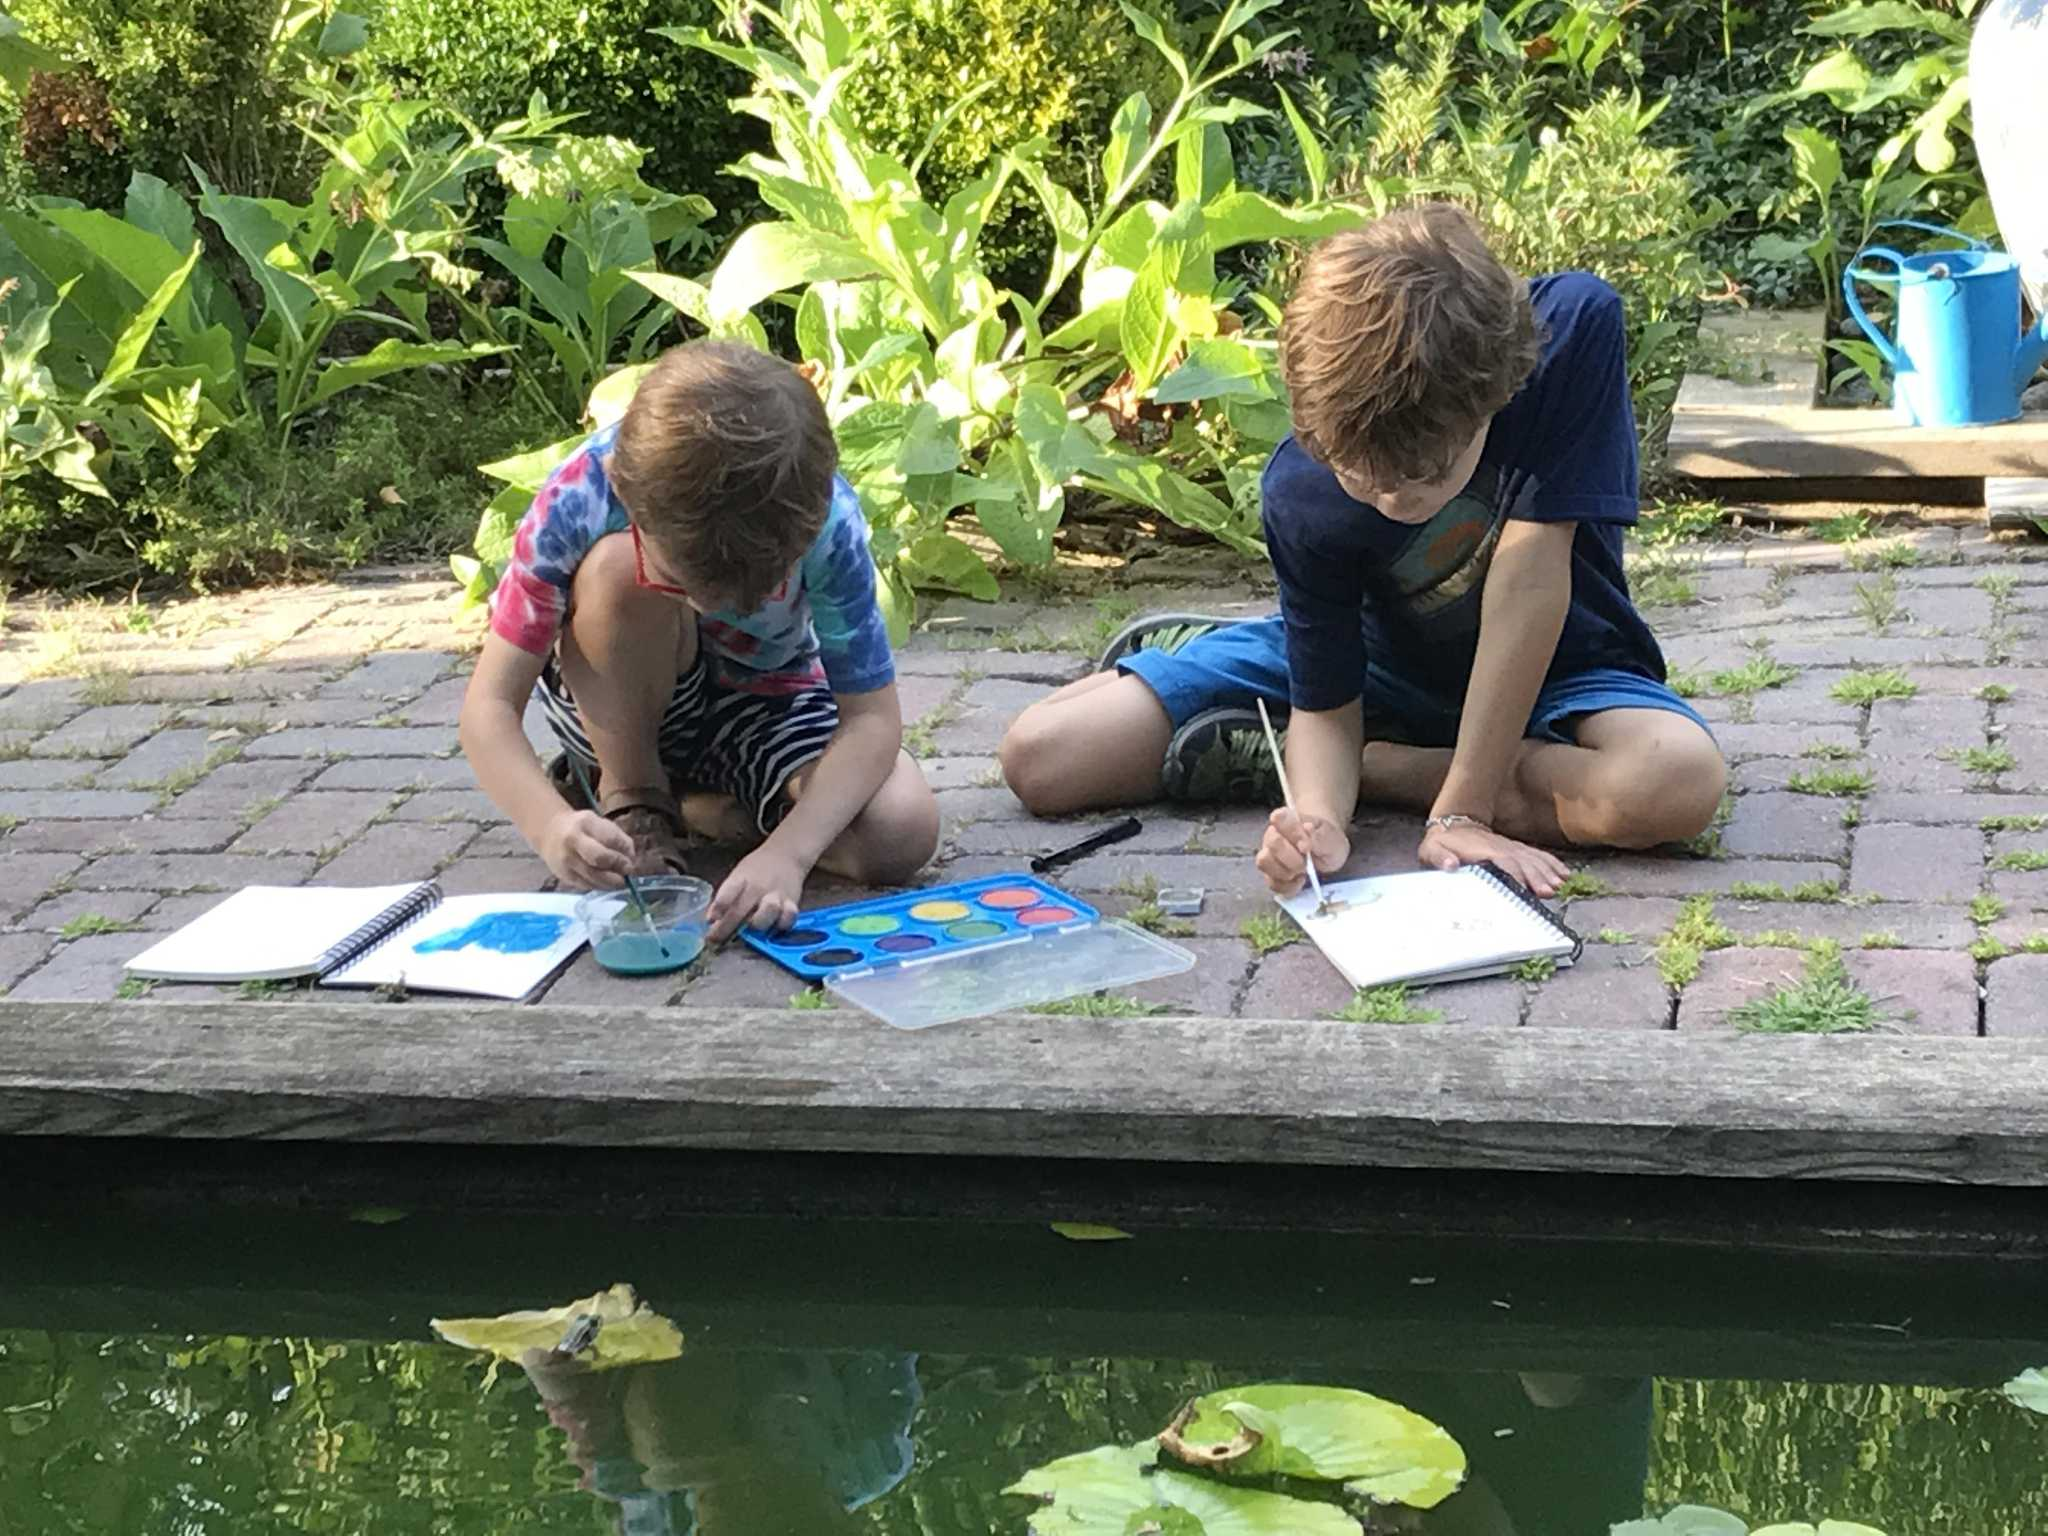 More Connecticut Parents Turn To Home Schooling Kids New Haven Register